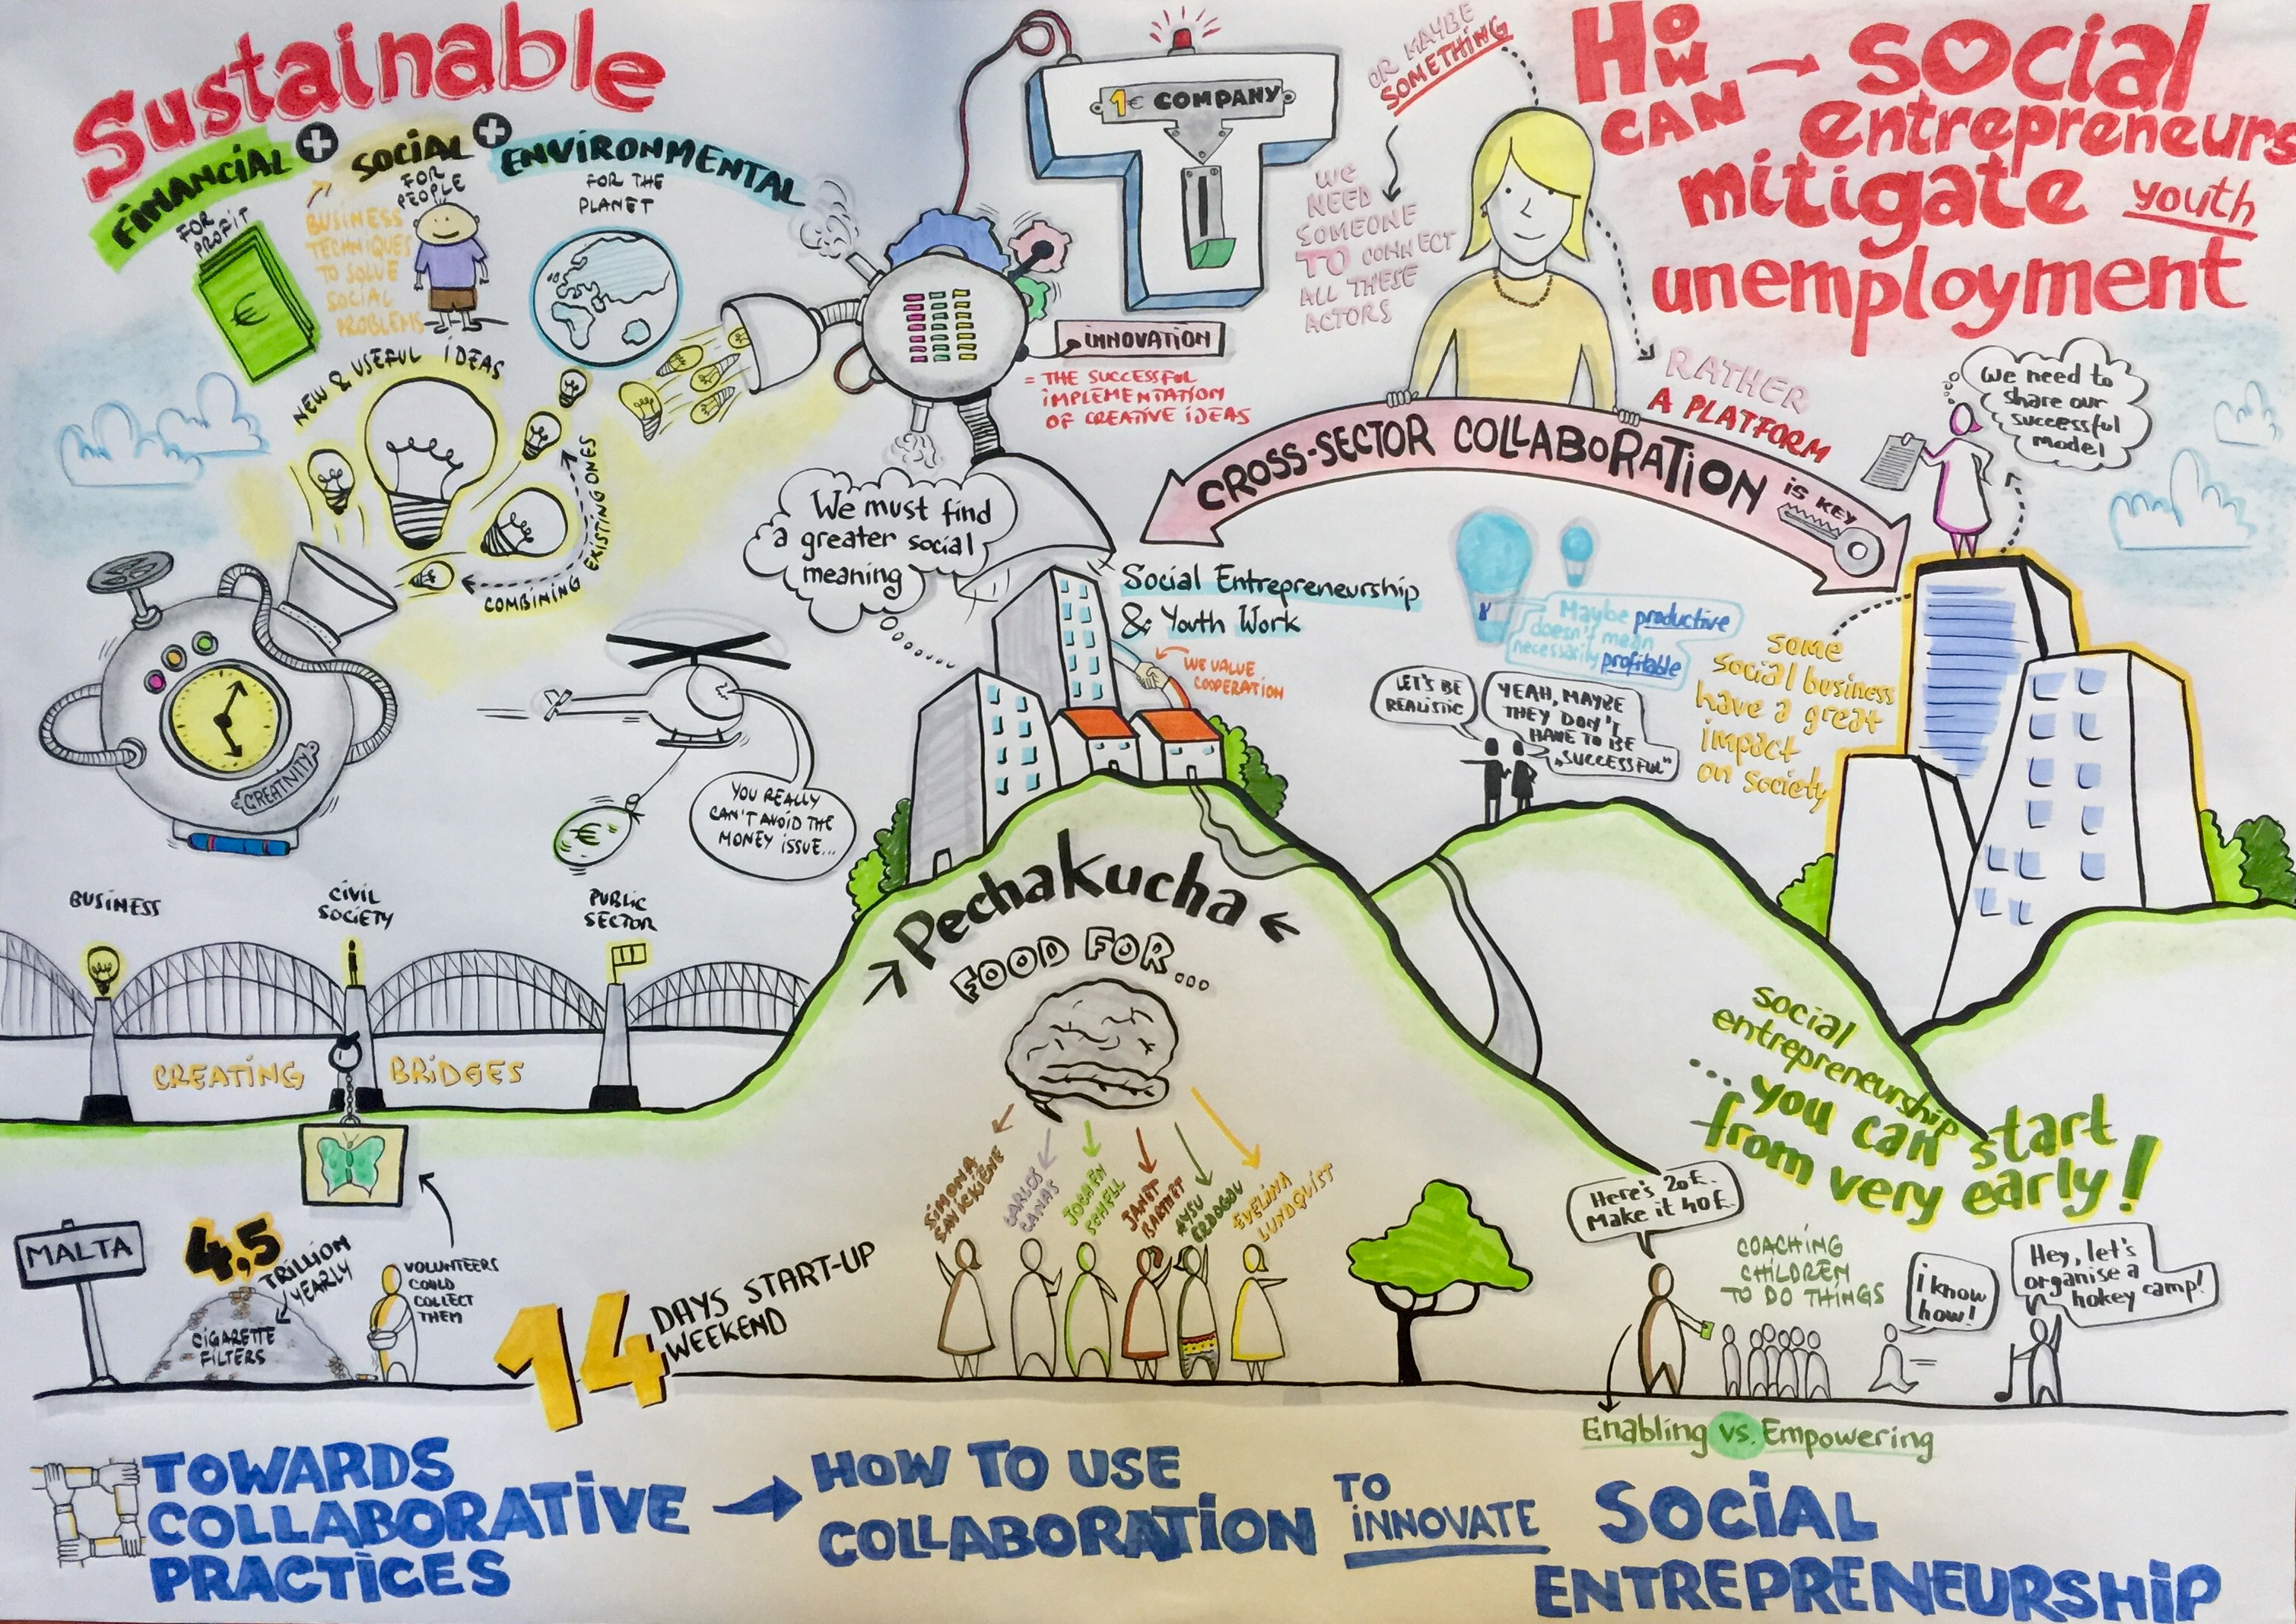 malmo-graphic-facilitation-paul-dumitru-towards-collaborative-practices-1